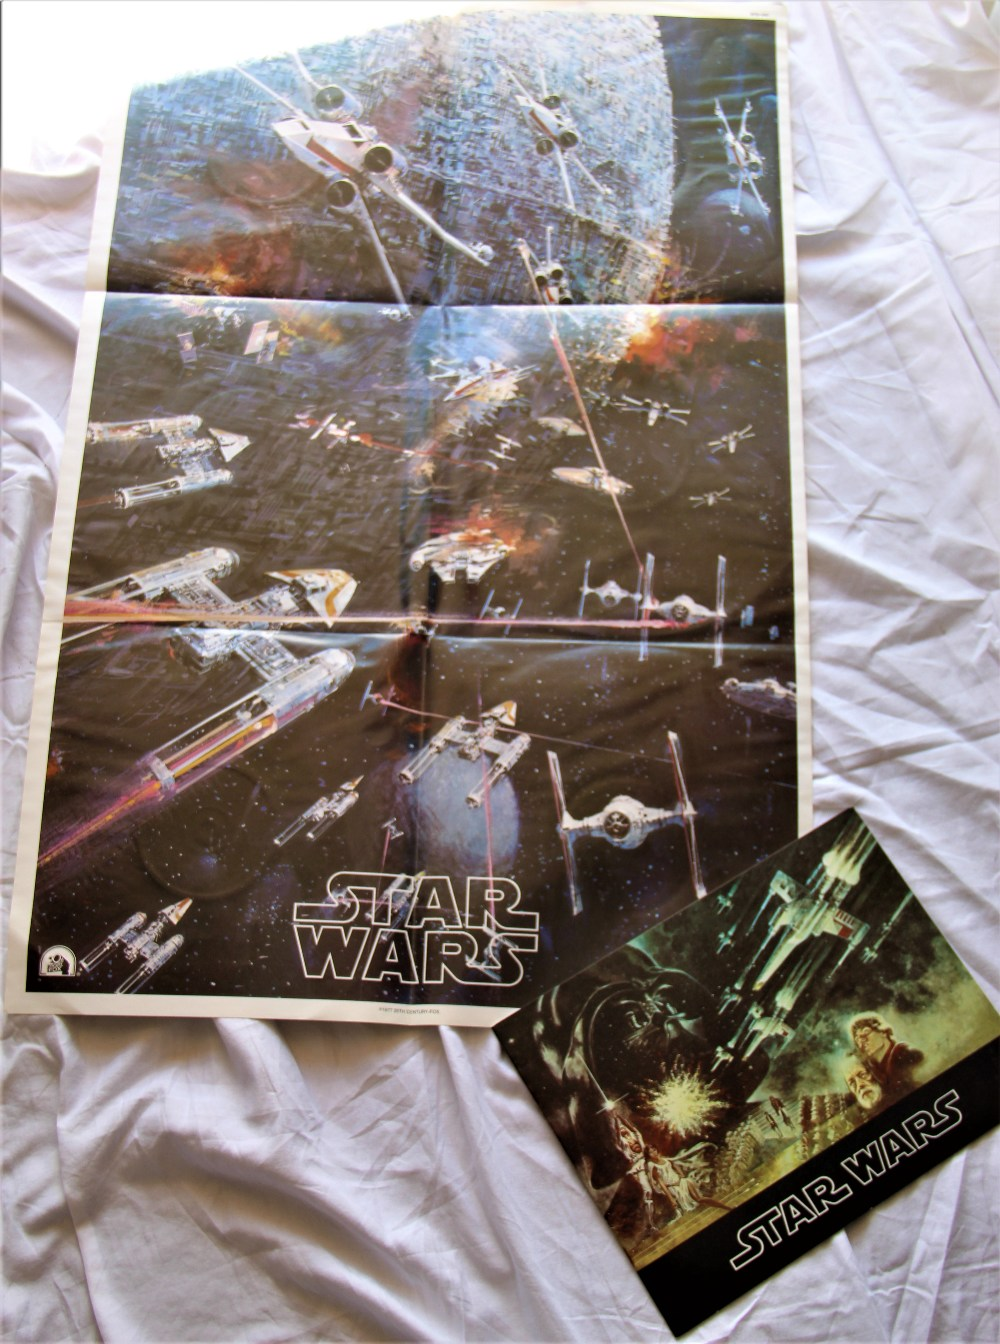 A Star Wars soundtrack with all inners / poster etc - Image 4 of 4